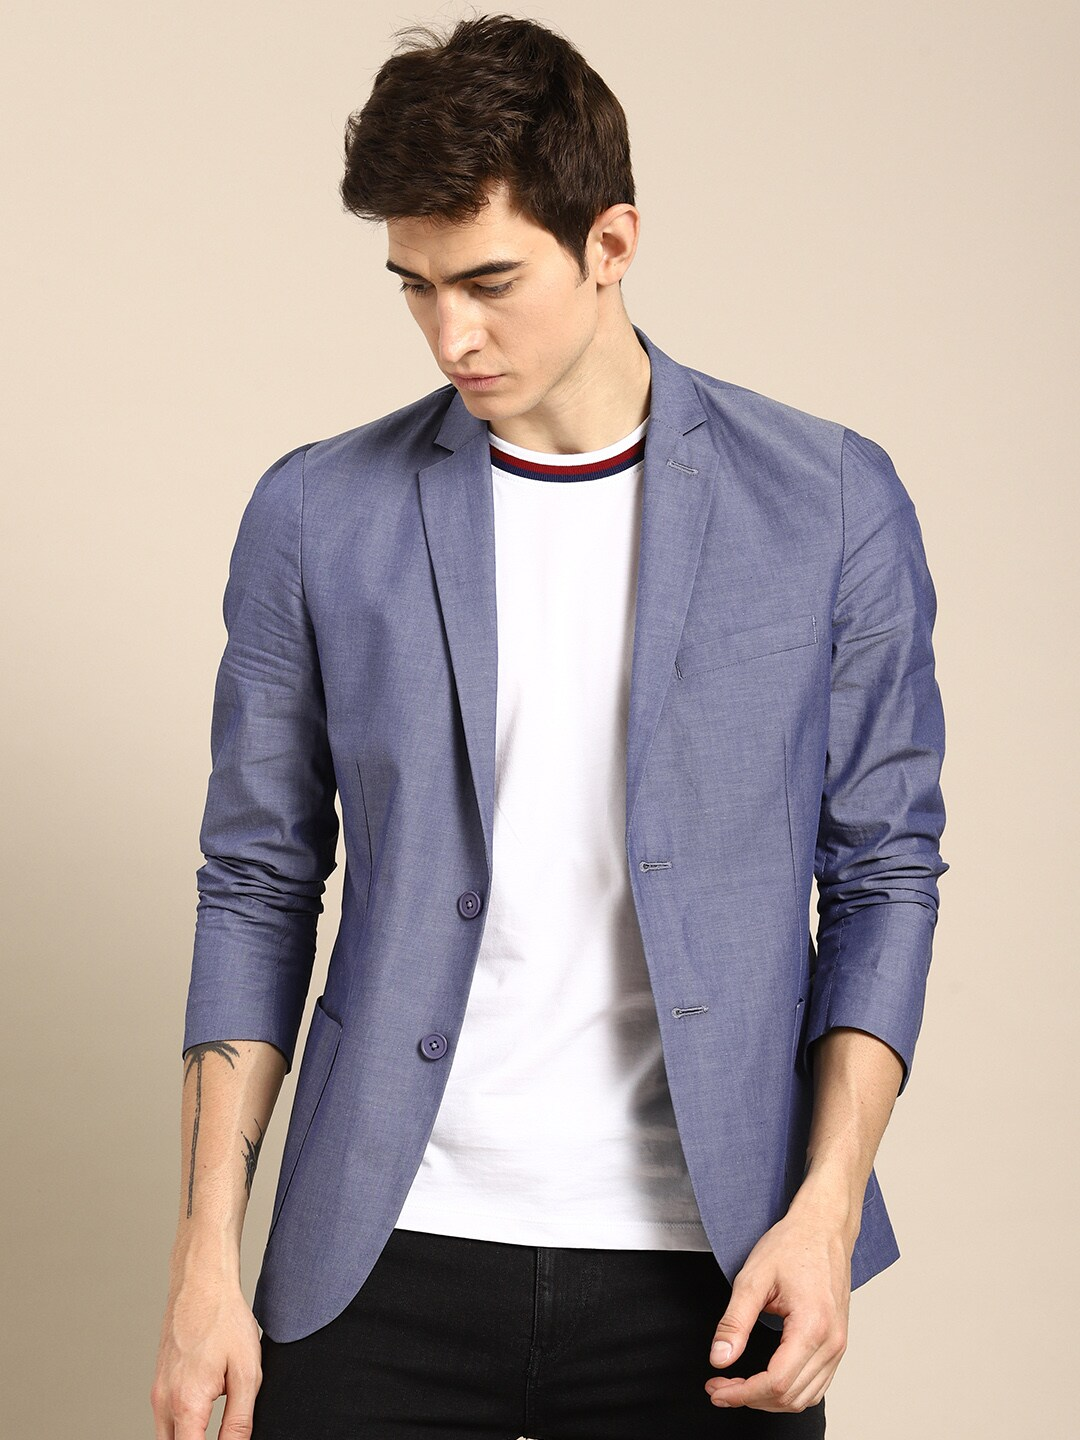 a0a88a7e9e Blazers - Buy Blazer Online at Best Price in India